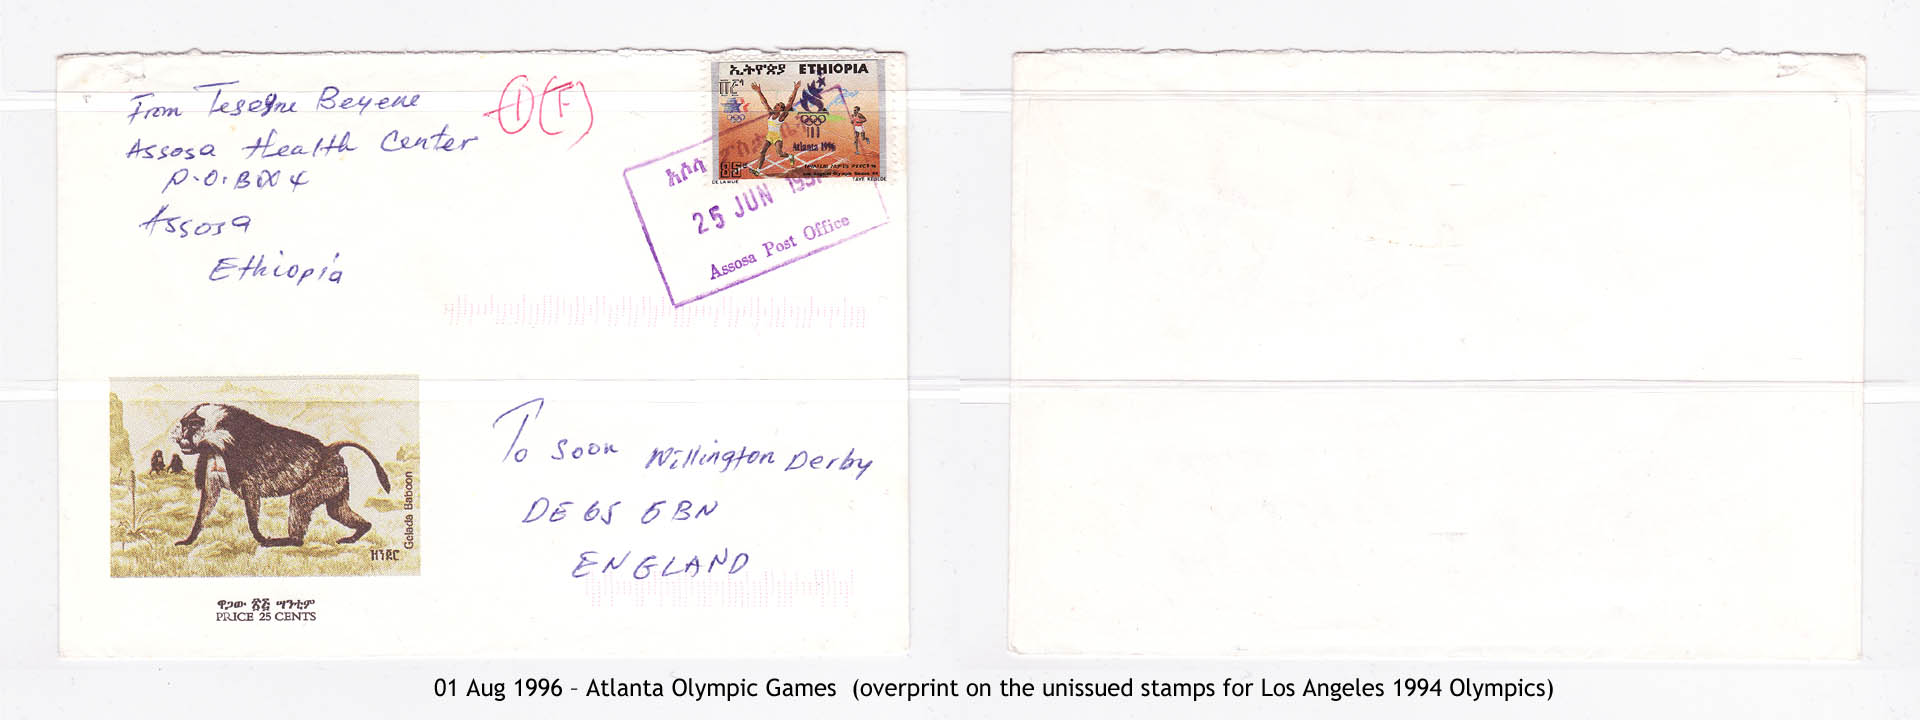 19960801 – Atlanta Olympic Games (overprint on the unissued stamps for Los Angeles 1994 Olympics)